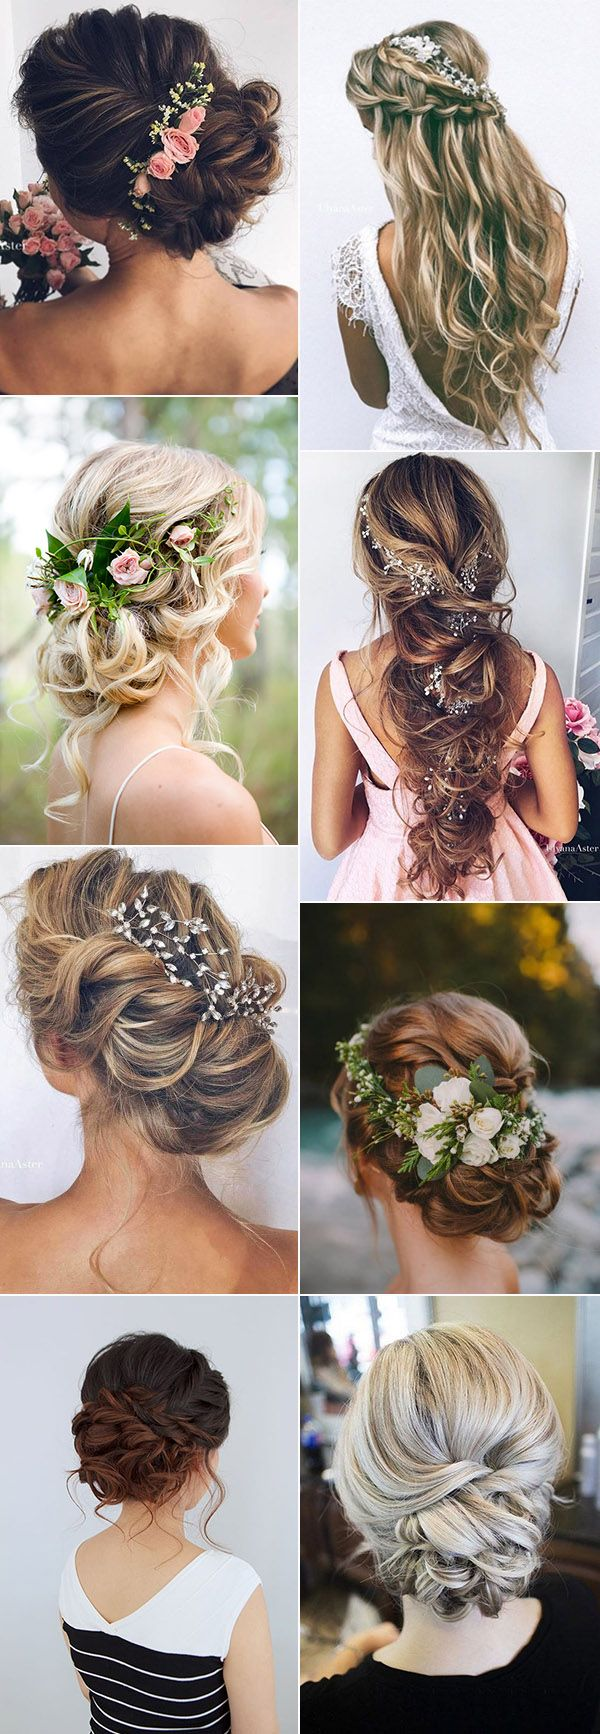 Top wedding hairstyles youull love for trends s wedding